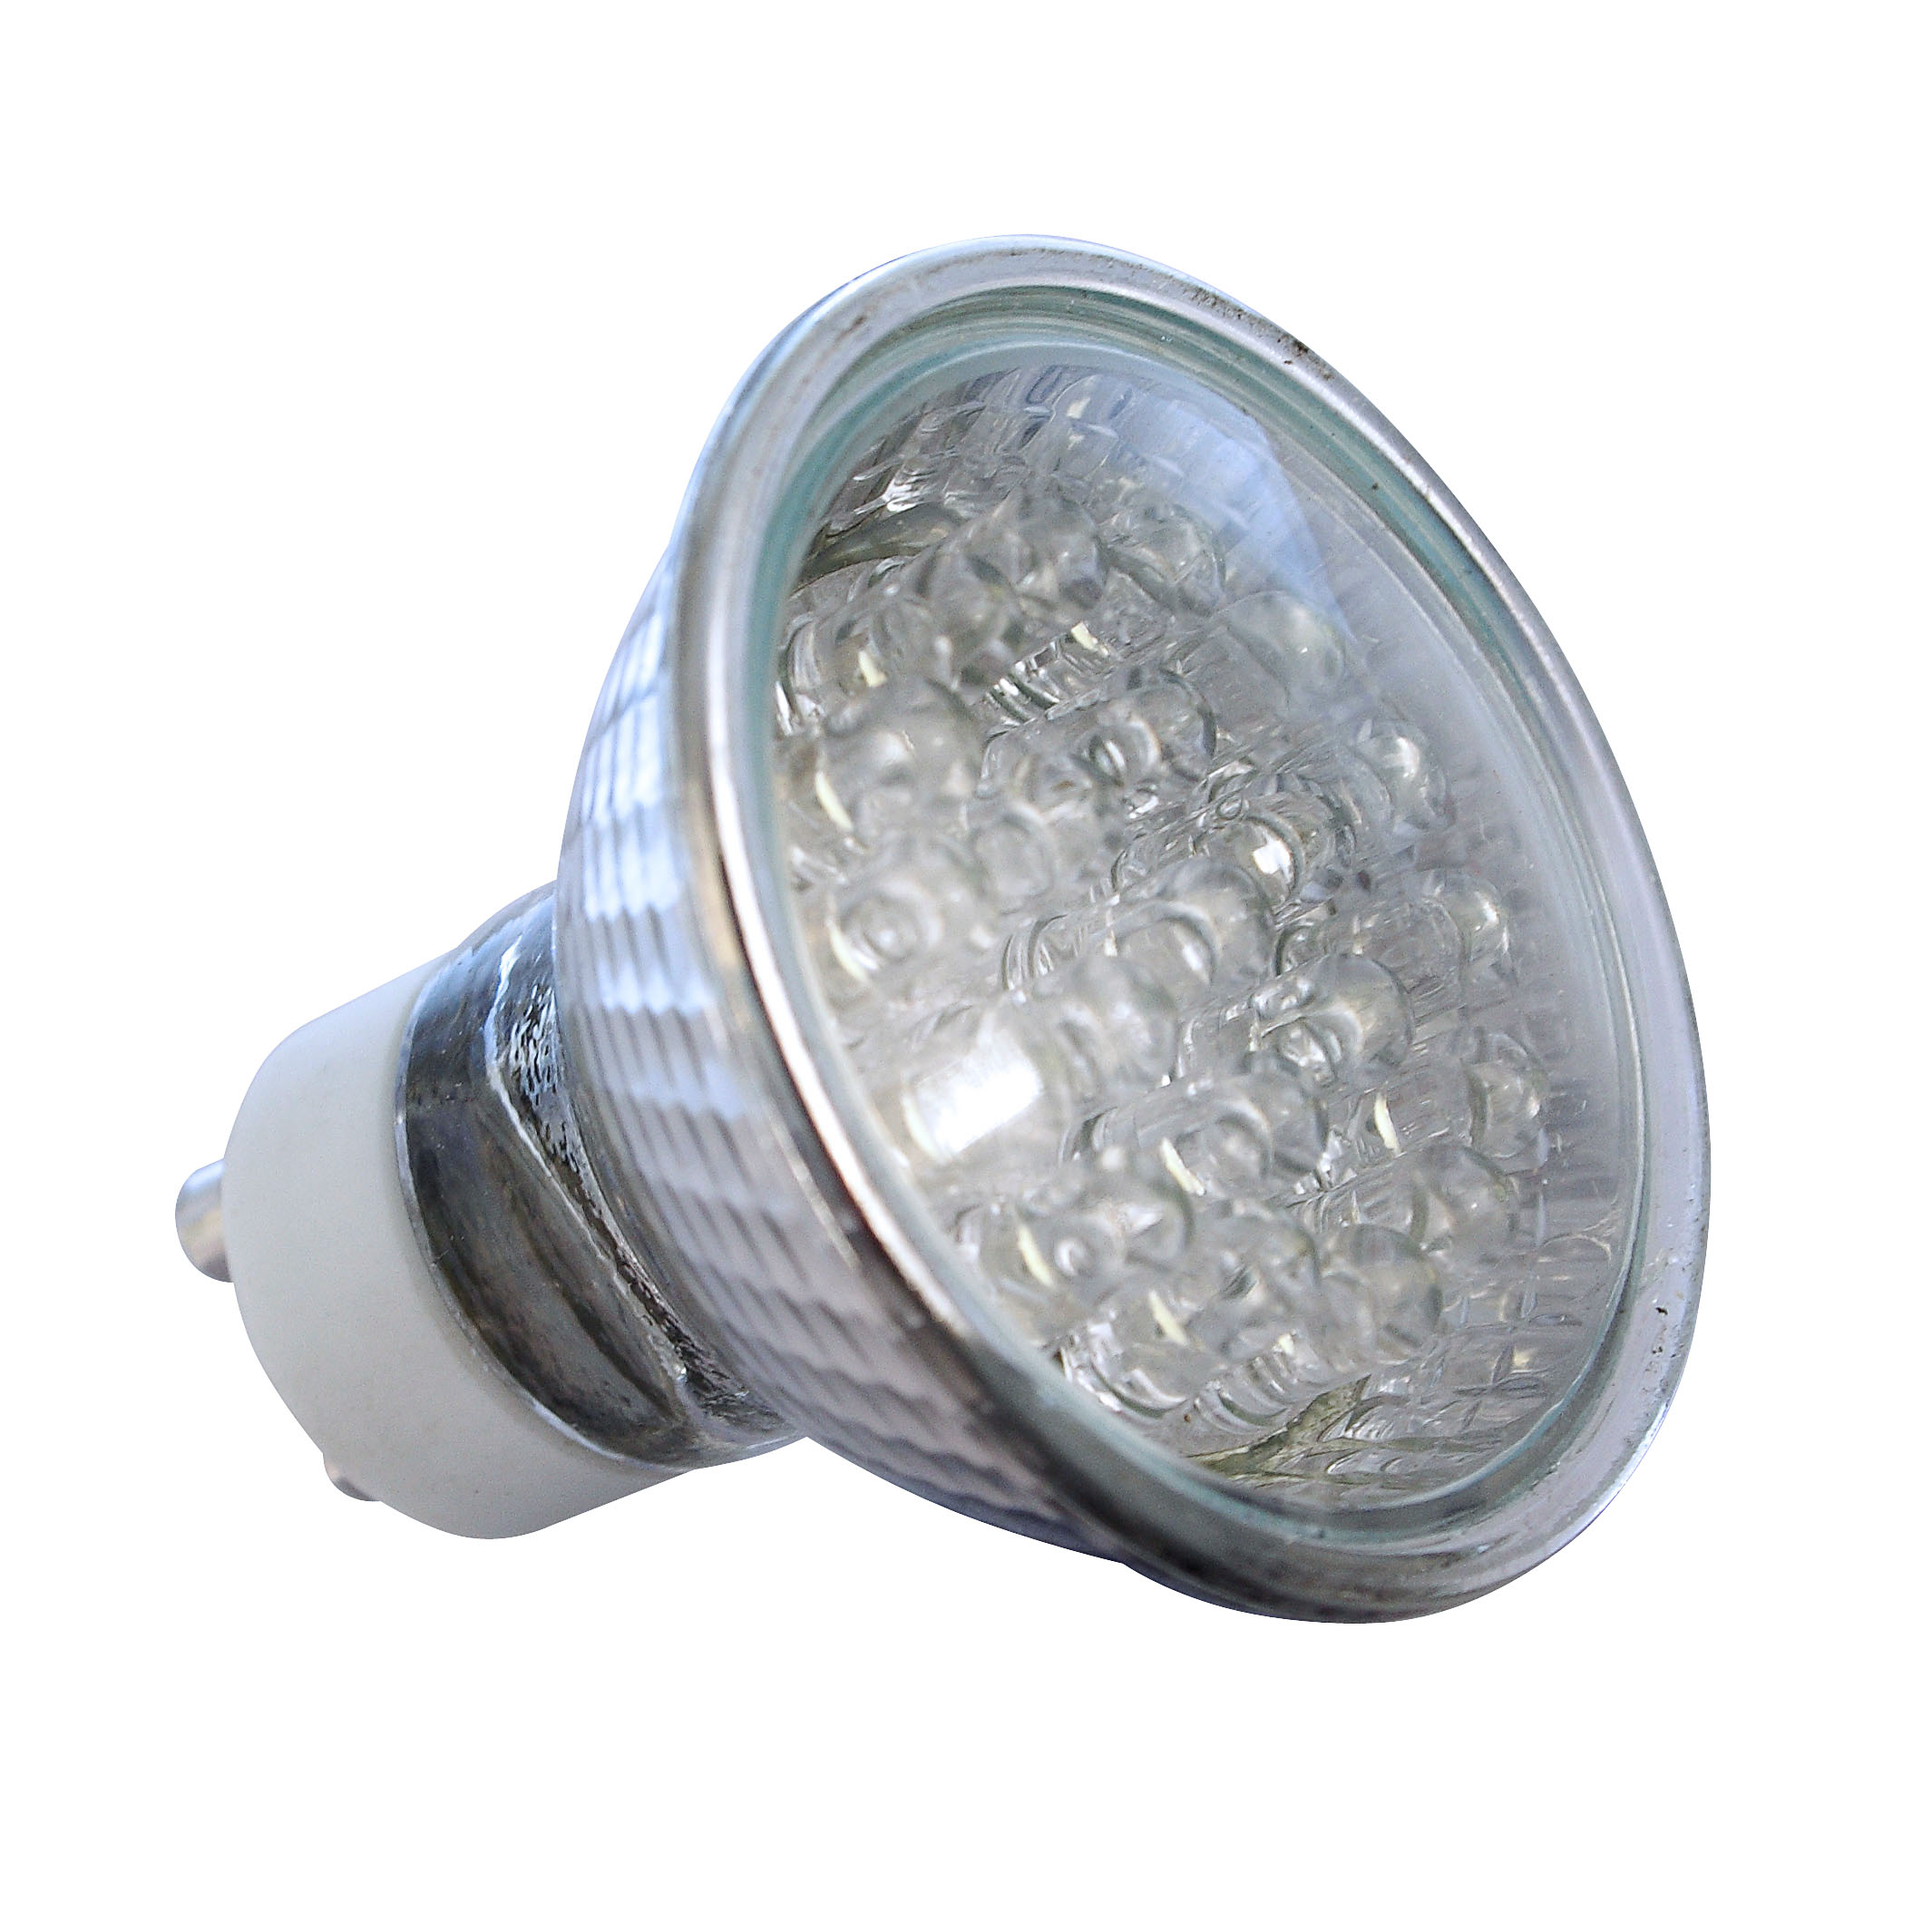 10 differnet types of popular Led lamps